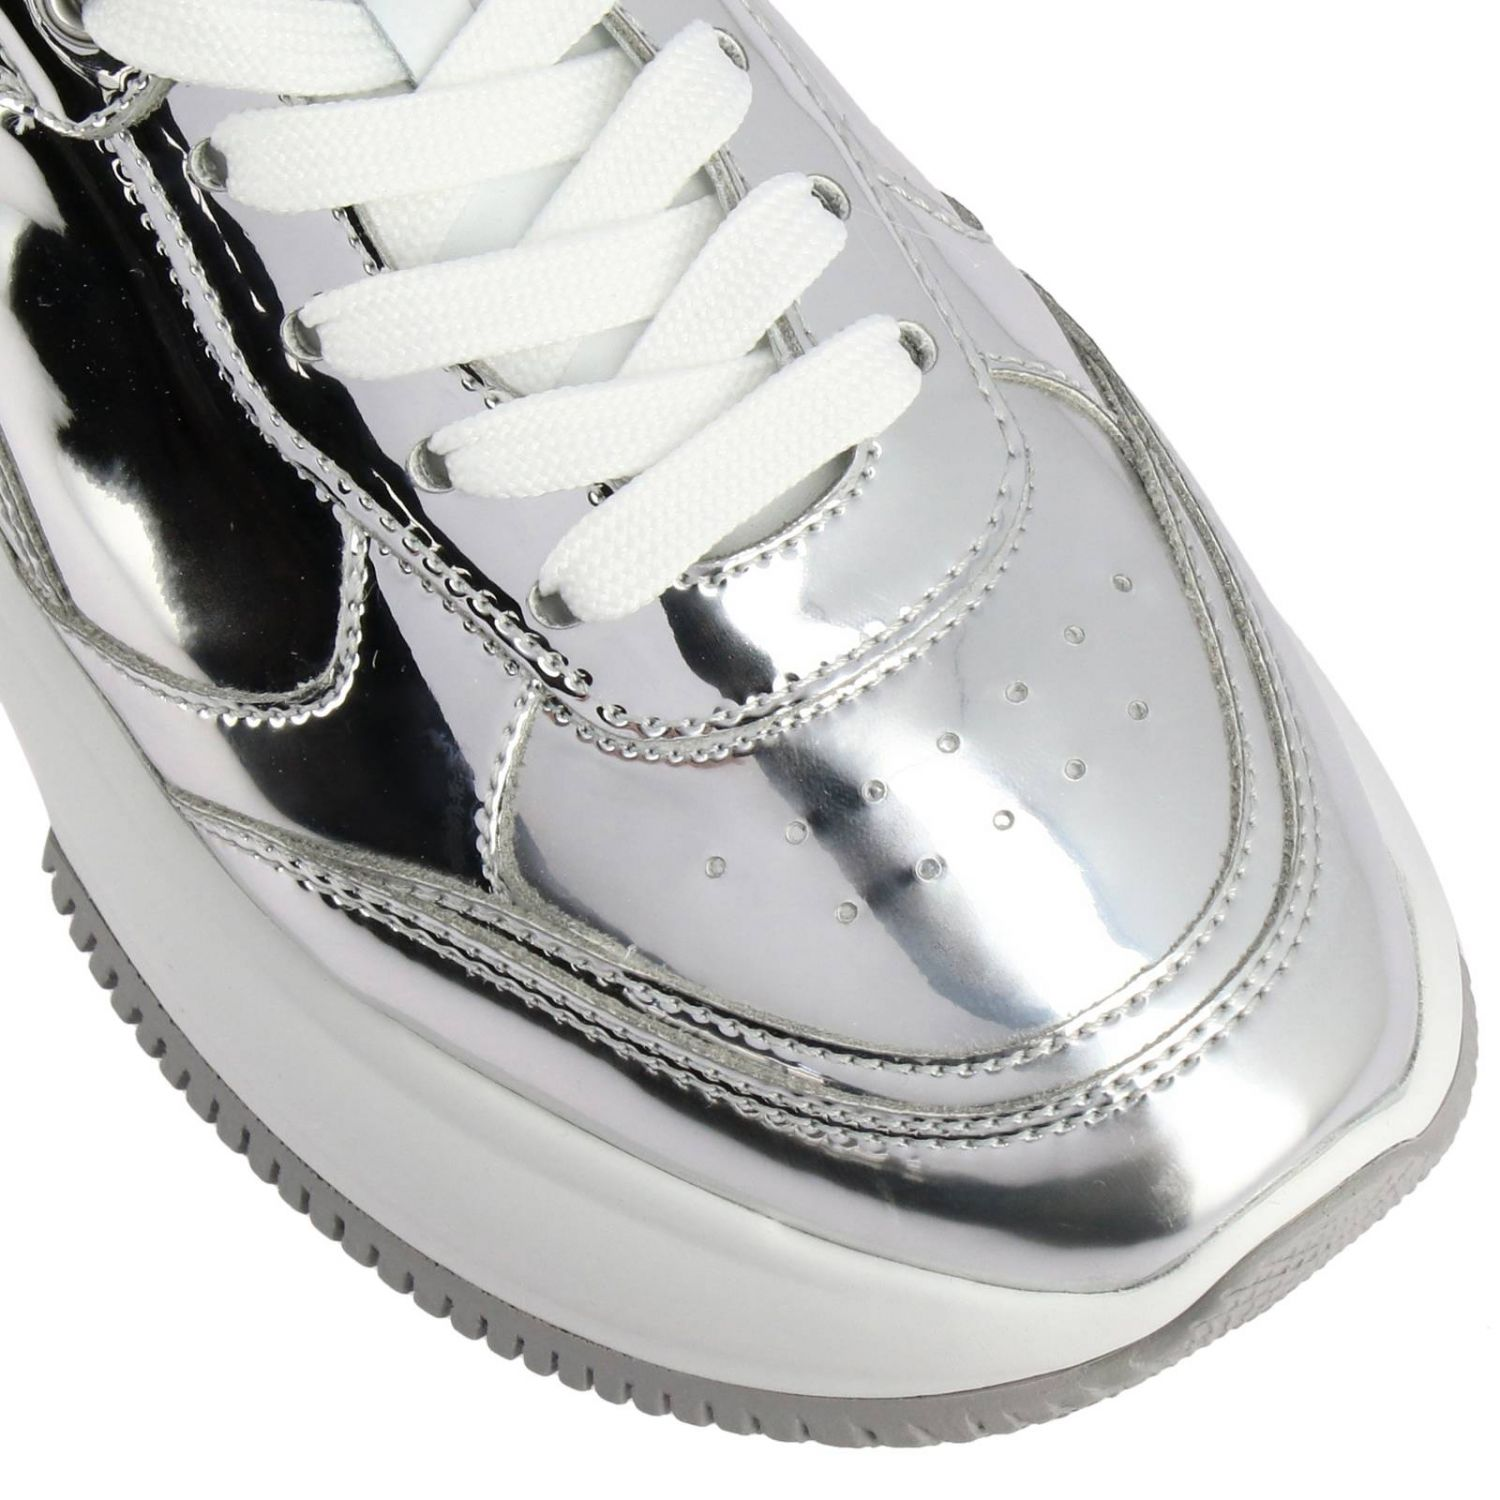 Sneakers Hogan: Active one Maxi Hogan mirrored leather sneakers and smooth leather silver 3